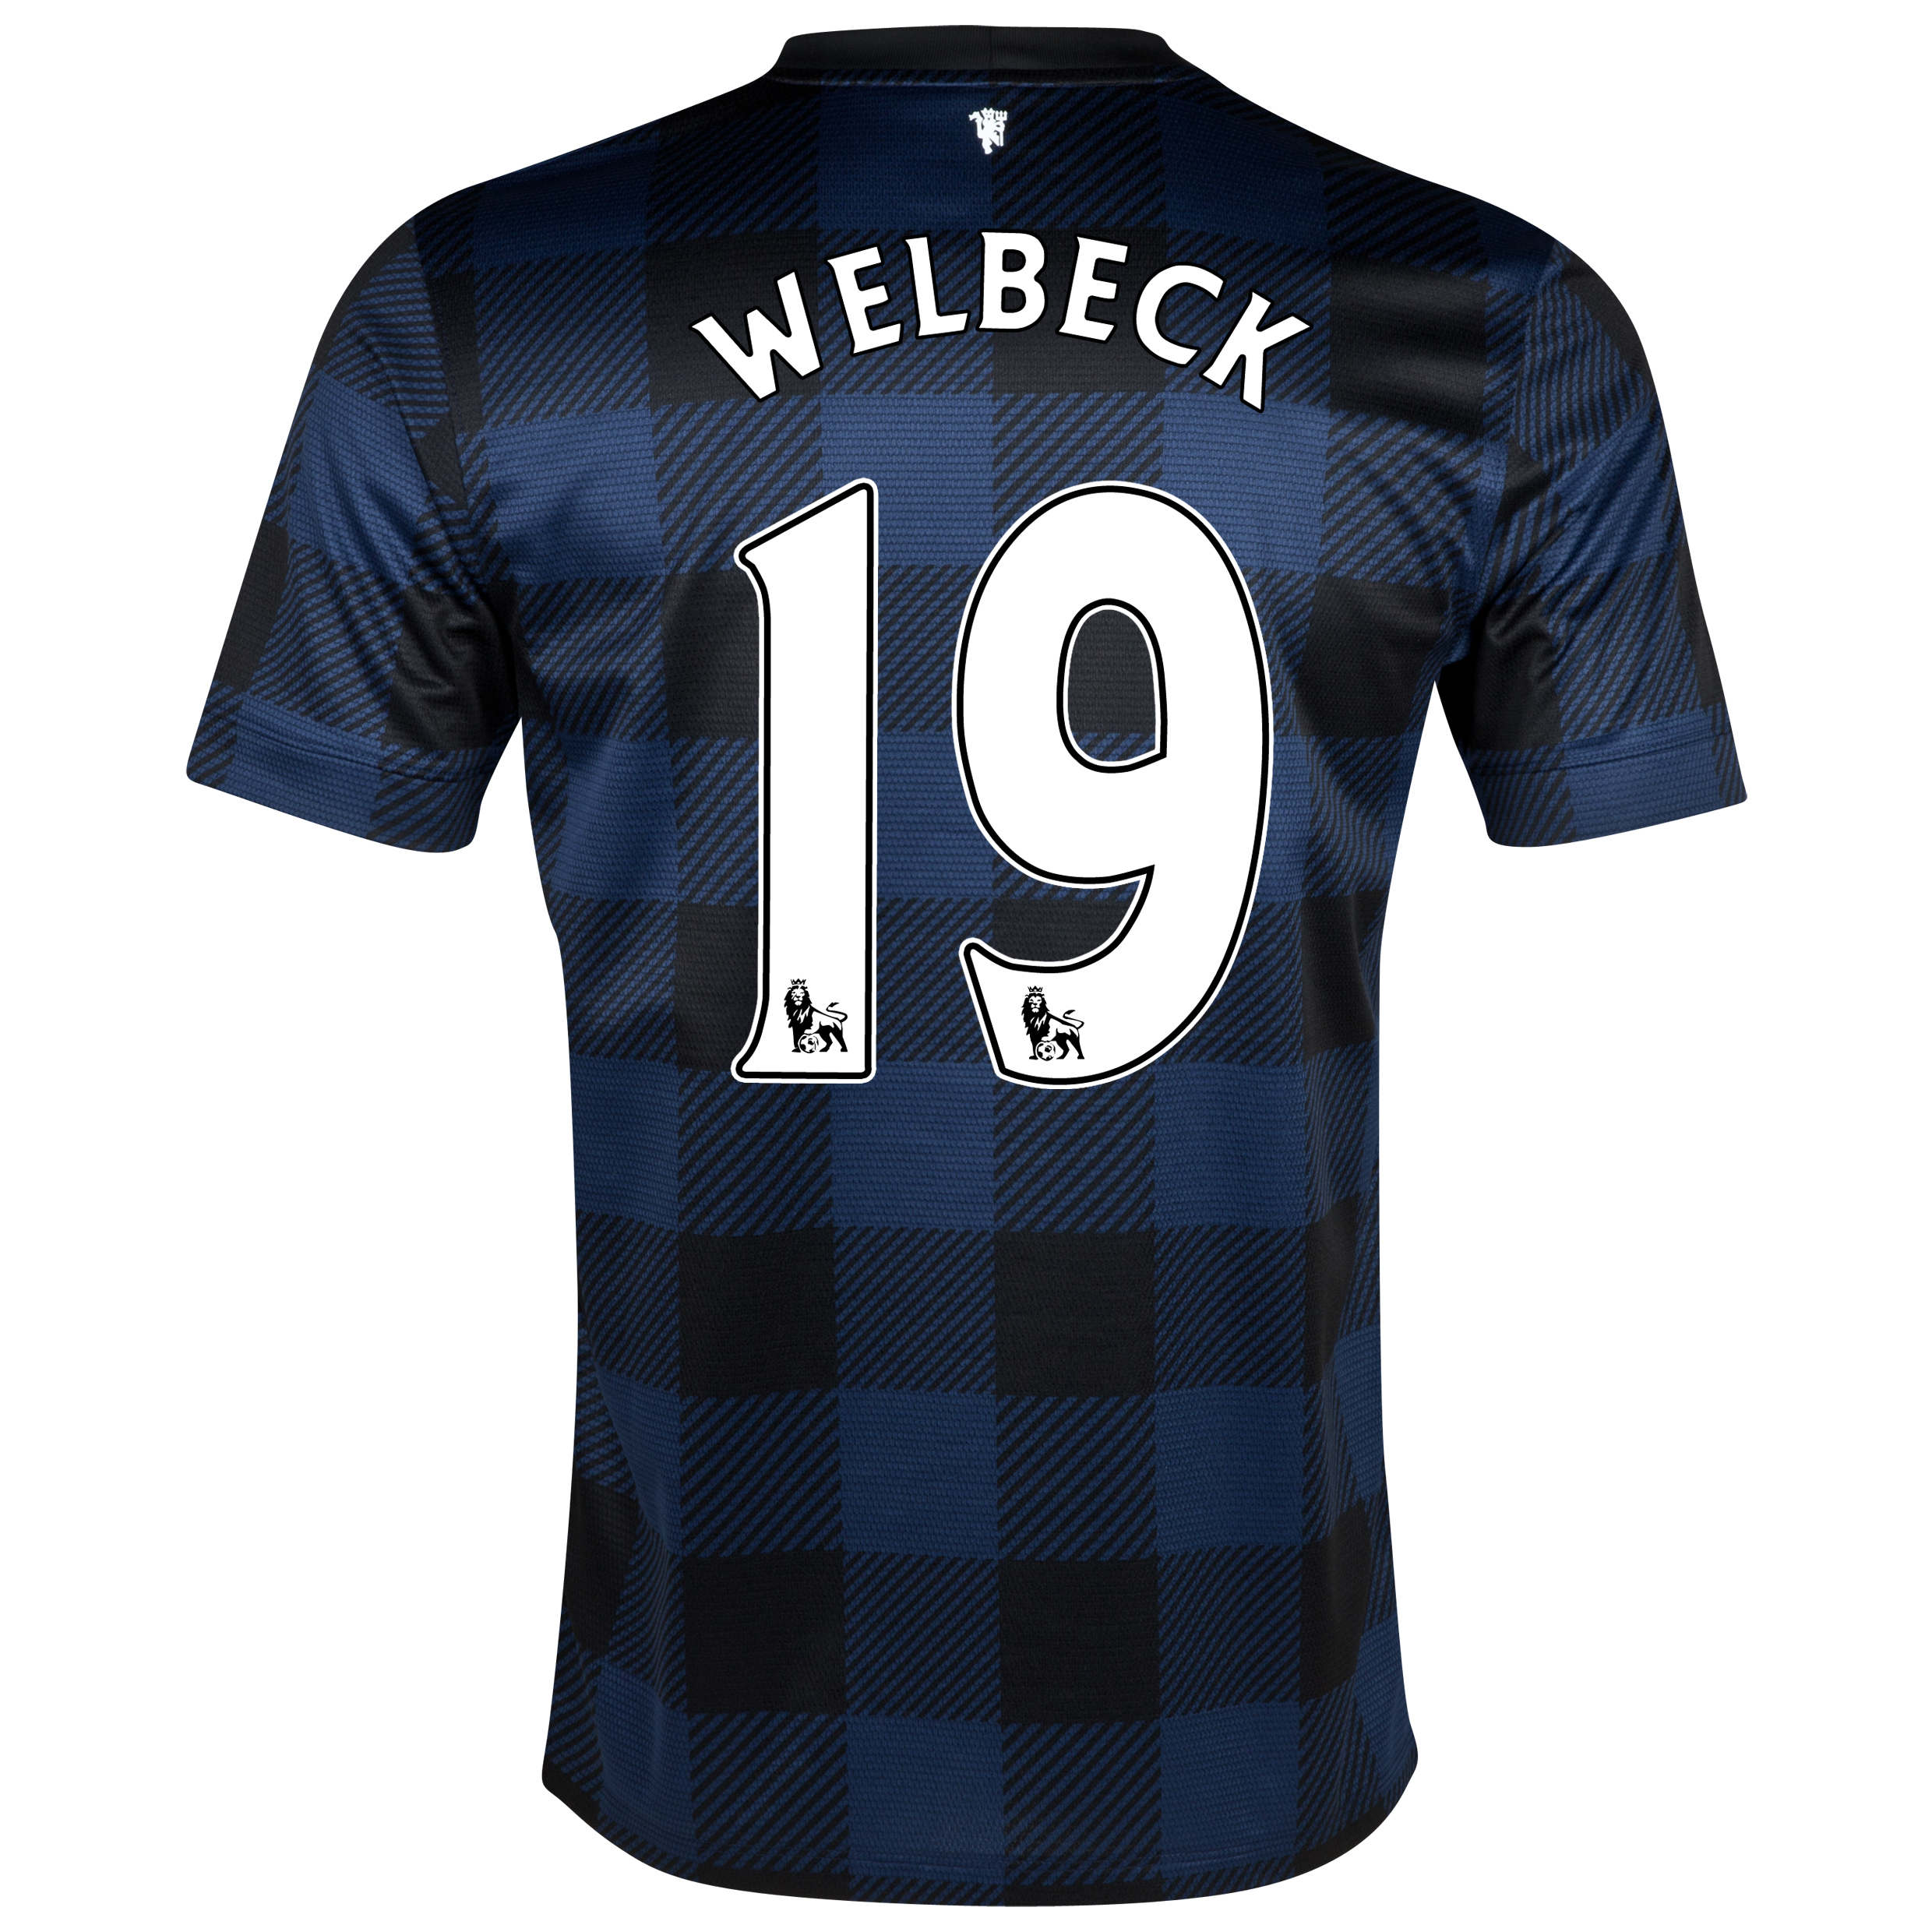 Manchester United Away Shirt 2013/14 - Kids with Welbeck 19 printing